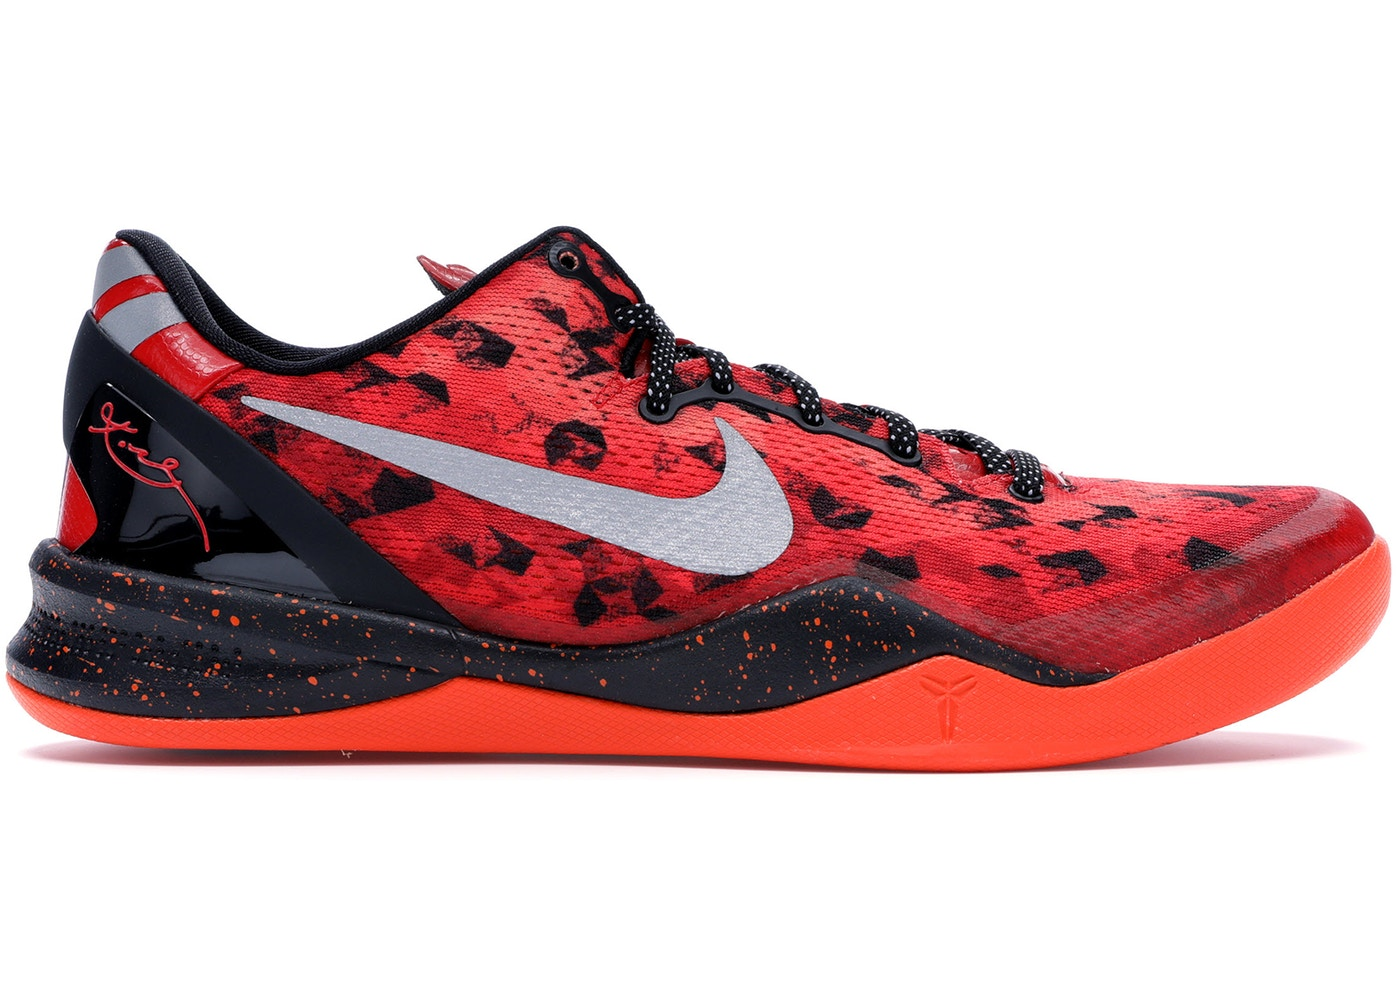 official photos ec6c9 bdbe3 Kobe 8 Challenge Red - 555035-600